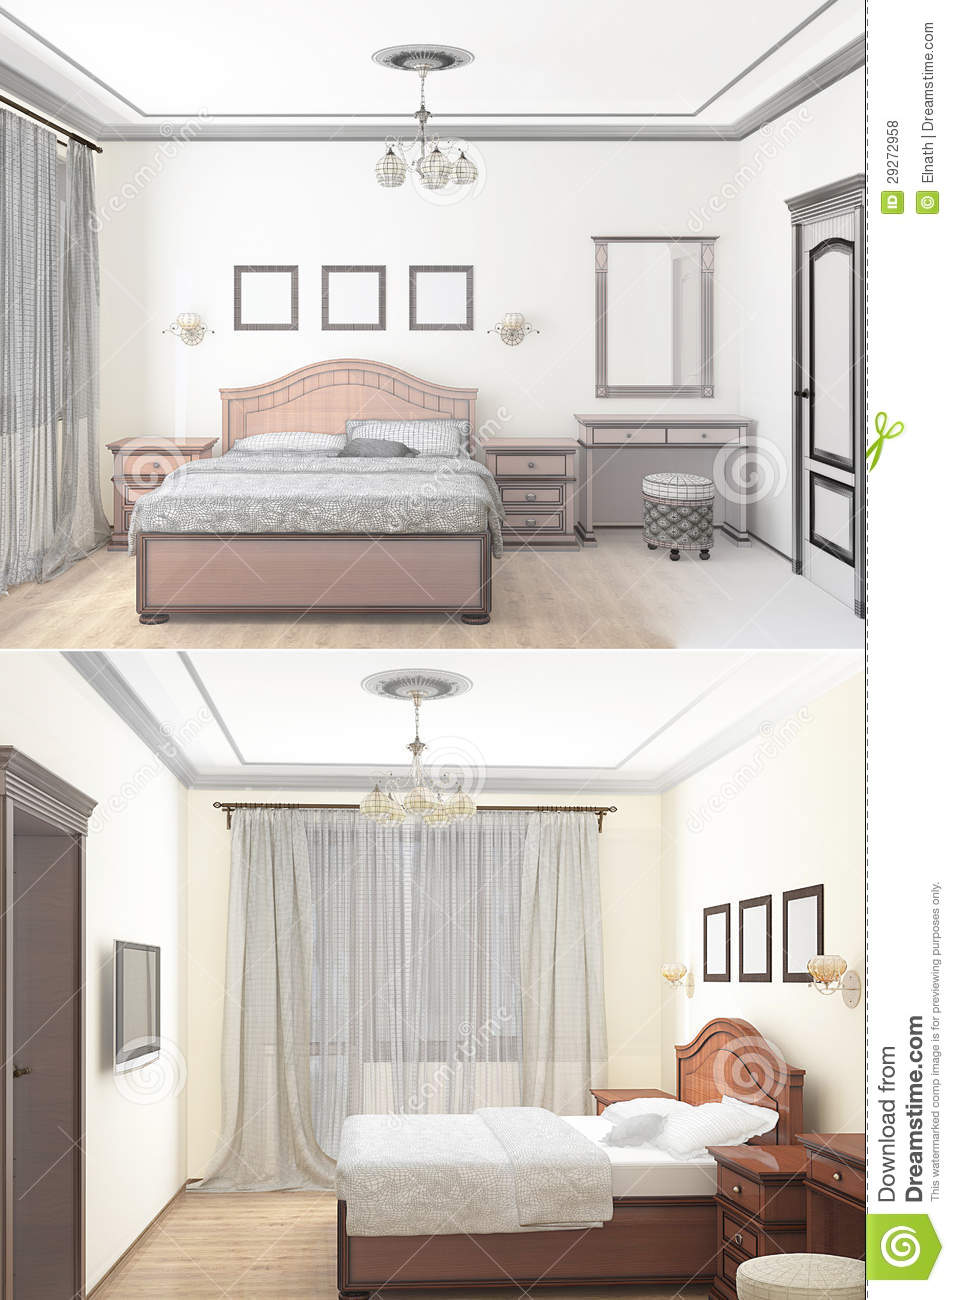 3d Sketch Of An Interior Bedroom Stock Illustration